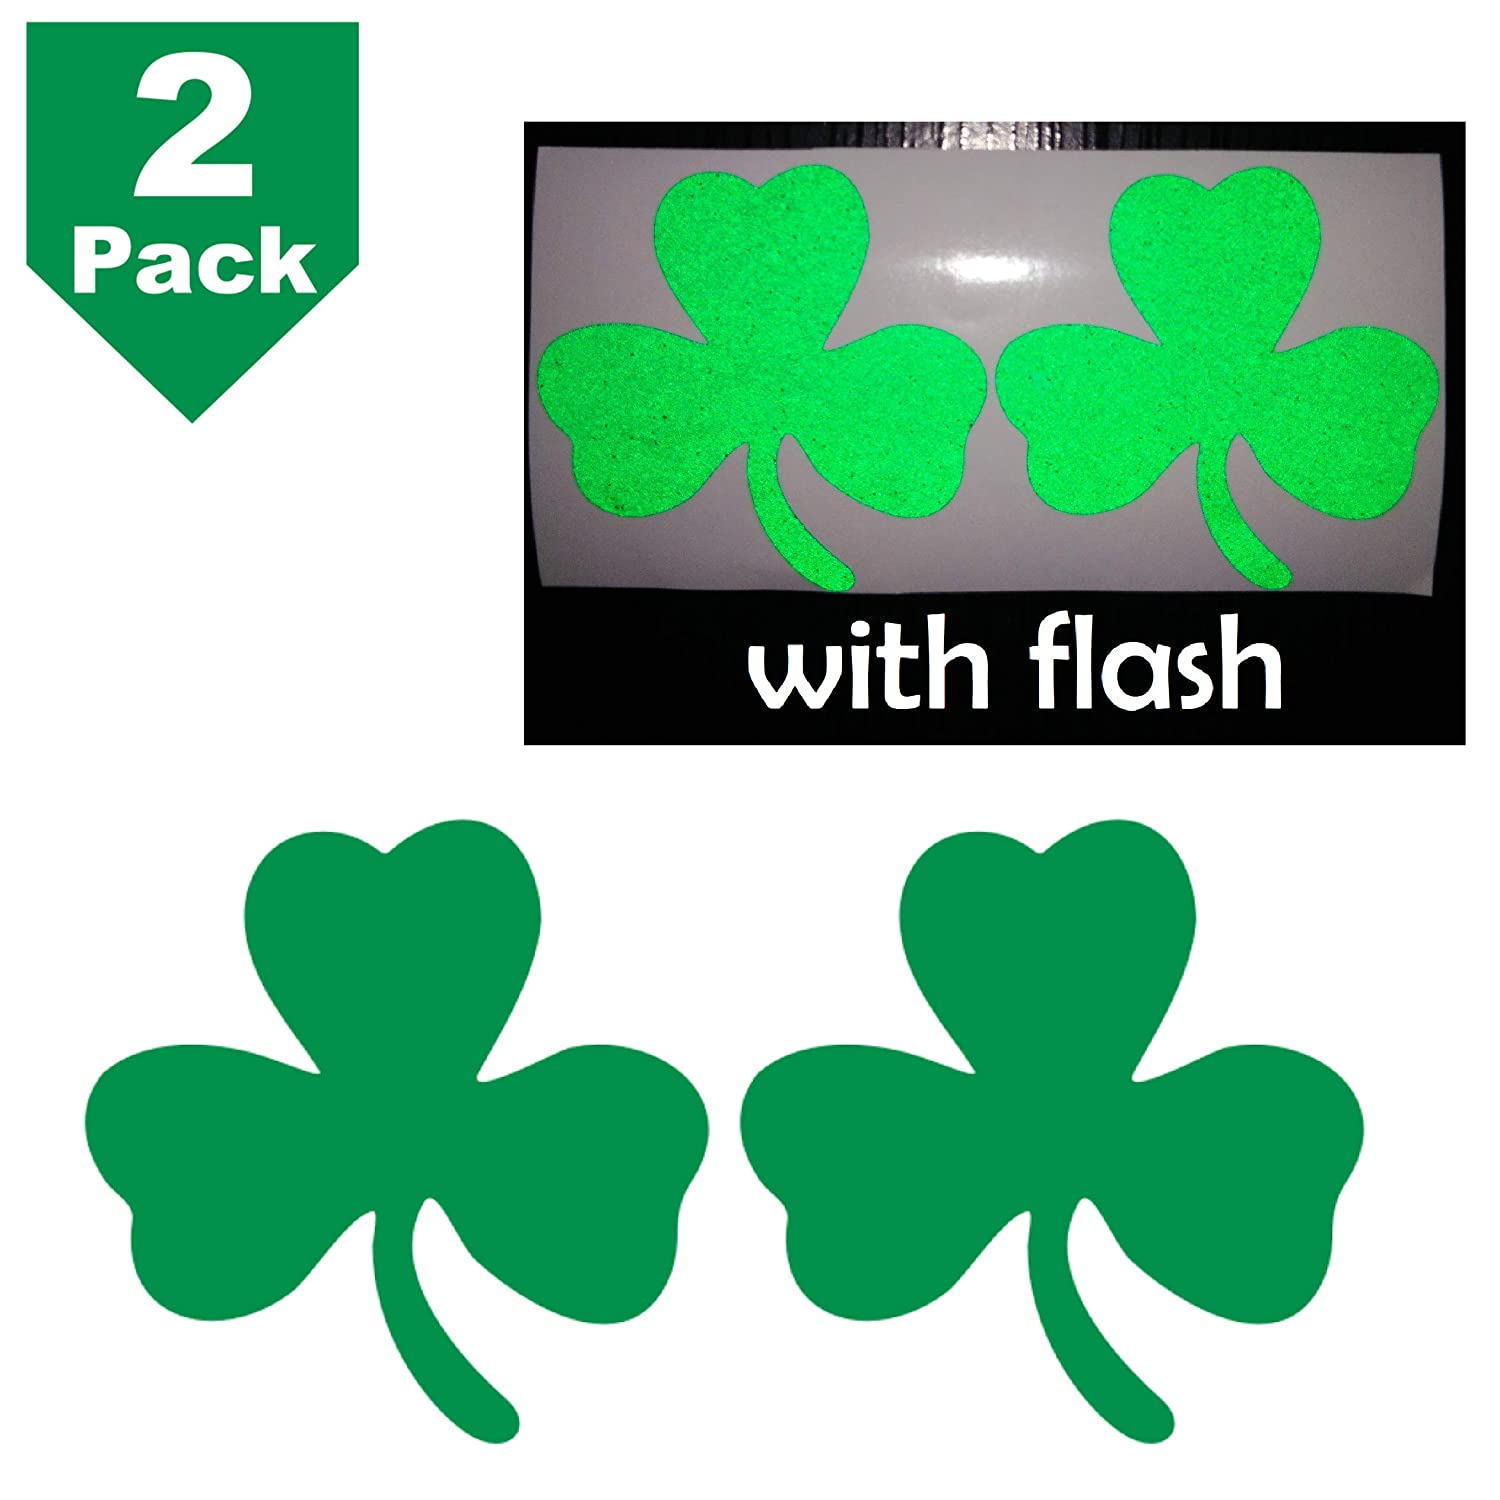 2.5 Clover 3-Leaf Shamrock Lucky Irish Flag Safety Green Reflective Decal Decals Vinyl Sticker High Visibility for Motorcycle Bike Bicycle Car Helmet Tailgate Mobile Phone Laptop Notebook Window